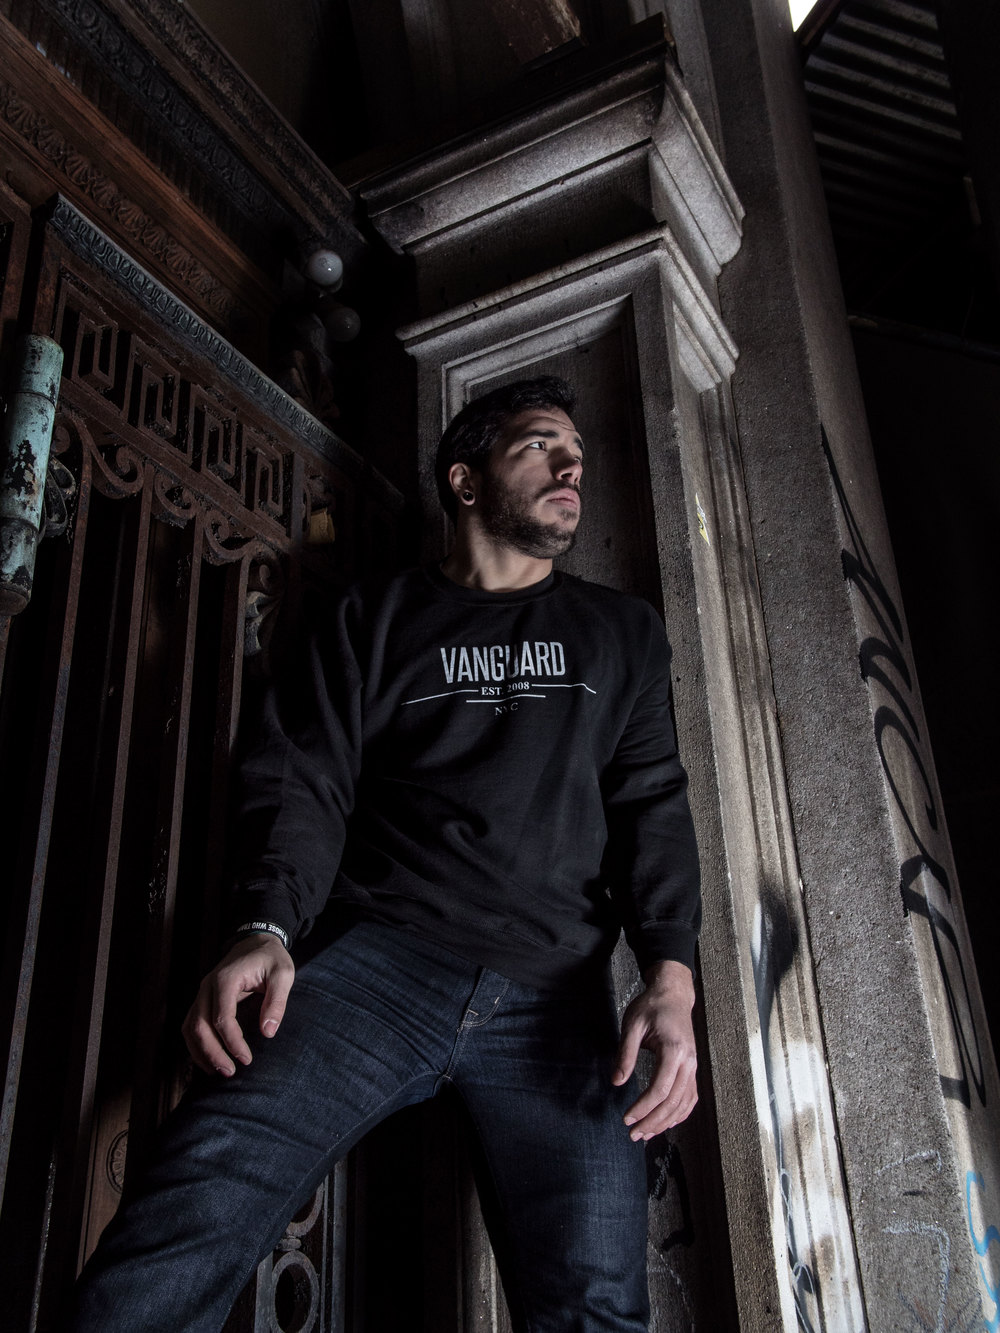 Mike-Araujo-Parkour-Freerunning-Vanguard-NYC-New-York-Urbex-Steve-Zavitz-Fashion-NY